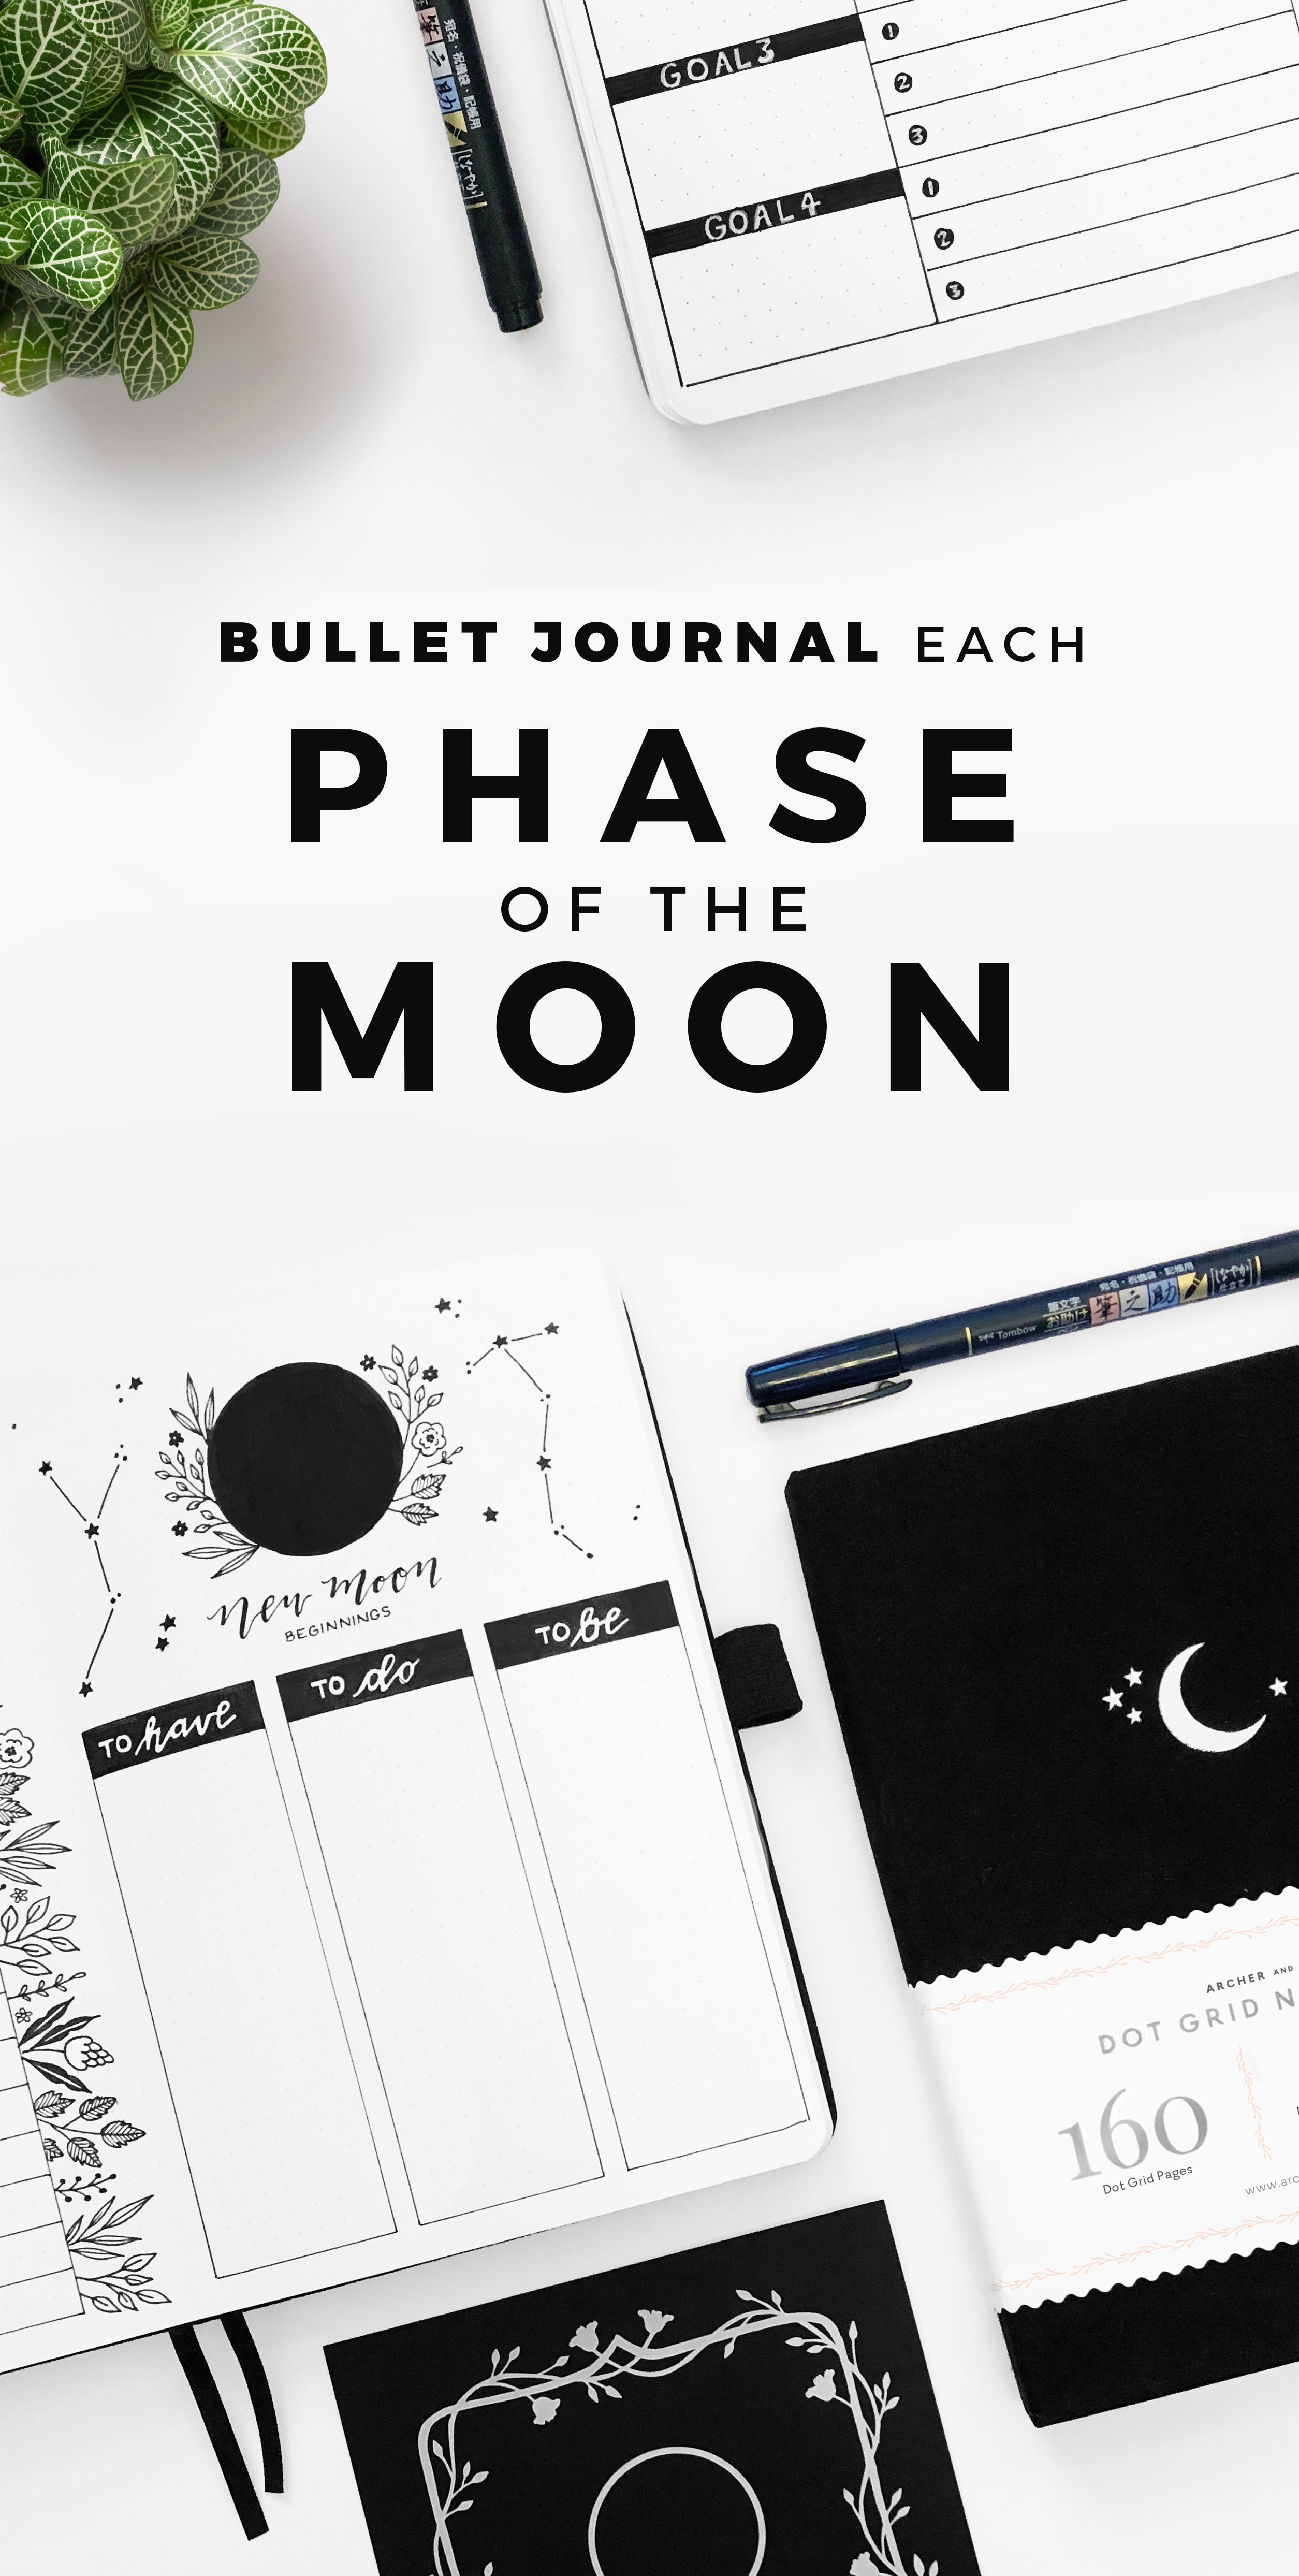 Bullet Journal each phase of the moon